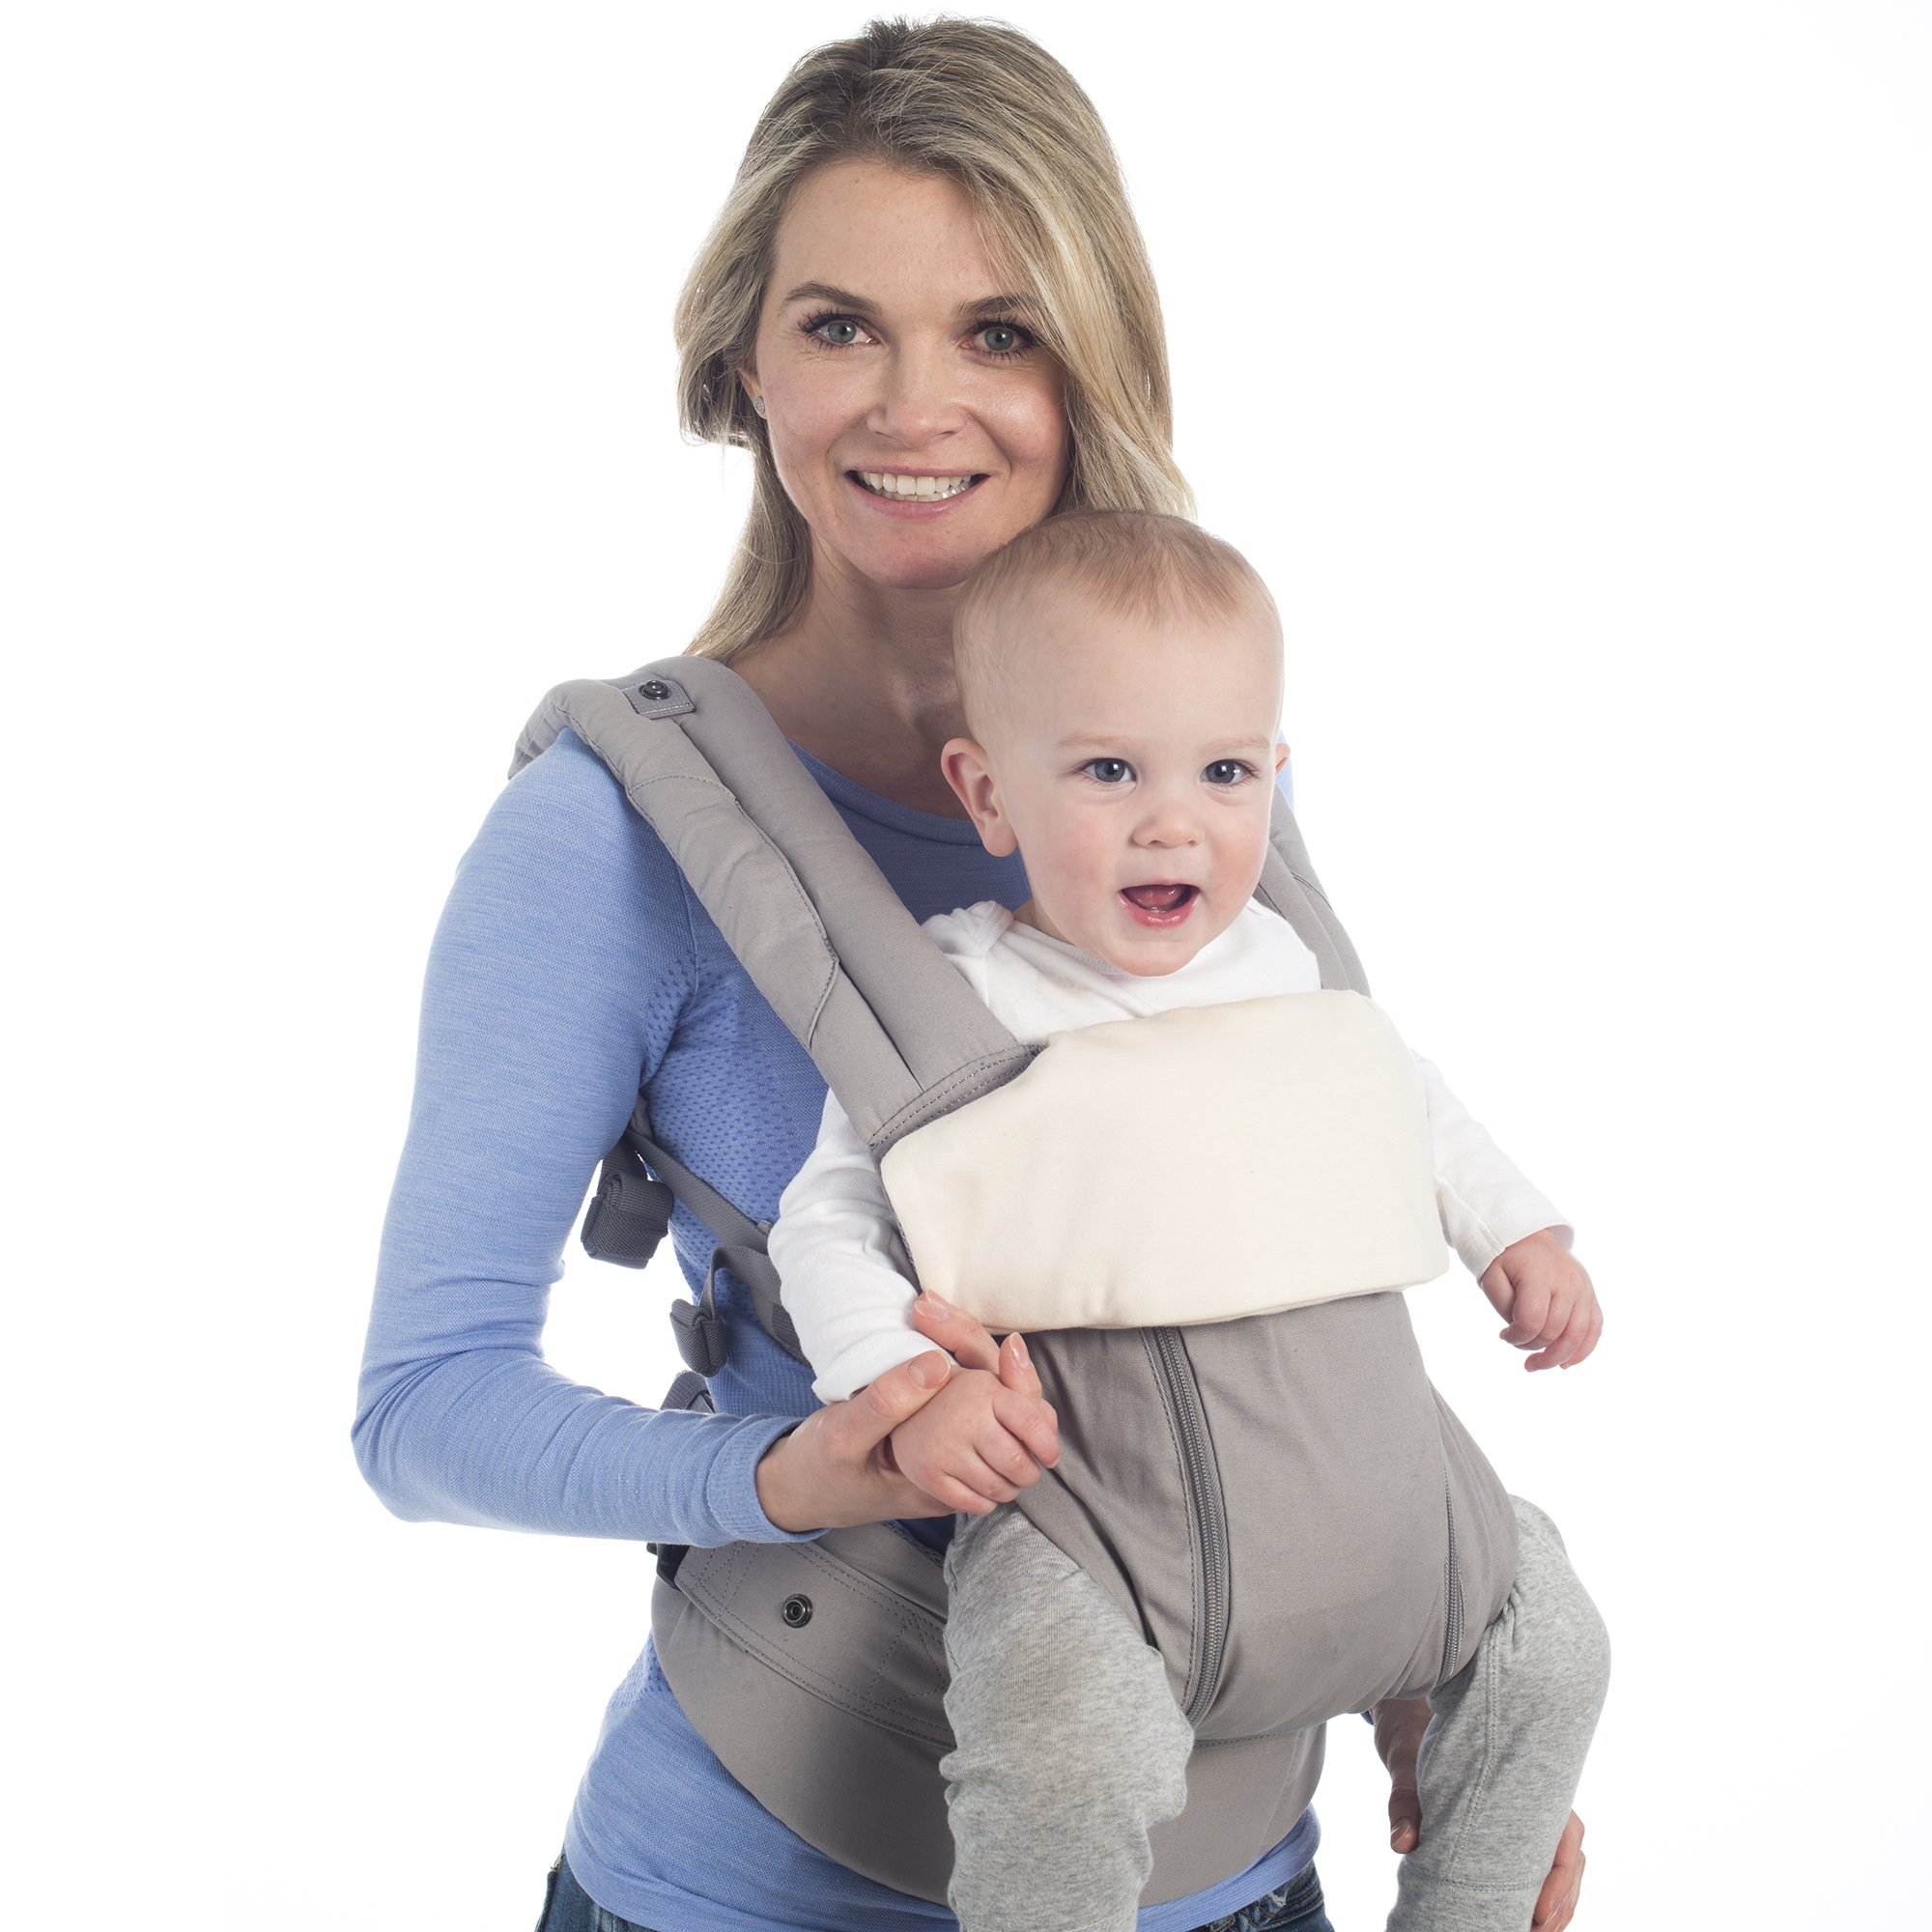 LÍLLÉbaby Organic Front Teething Bib, Natural - Organic Cotton Teething Bib for Baby Carrier